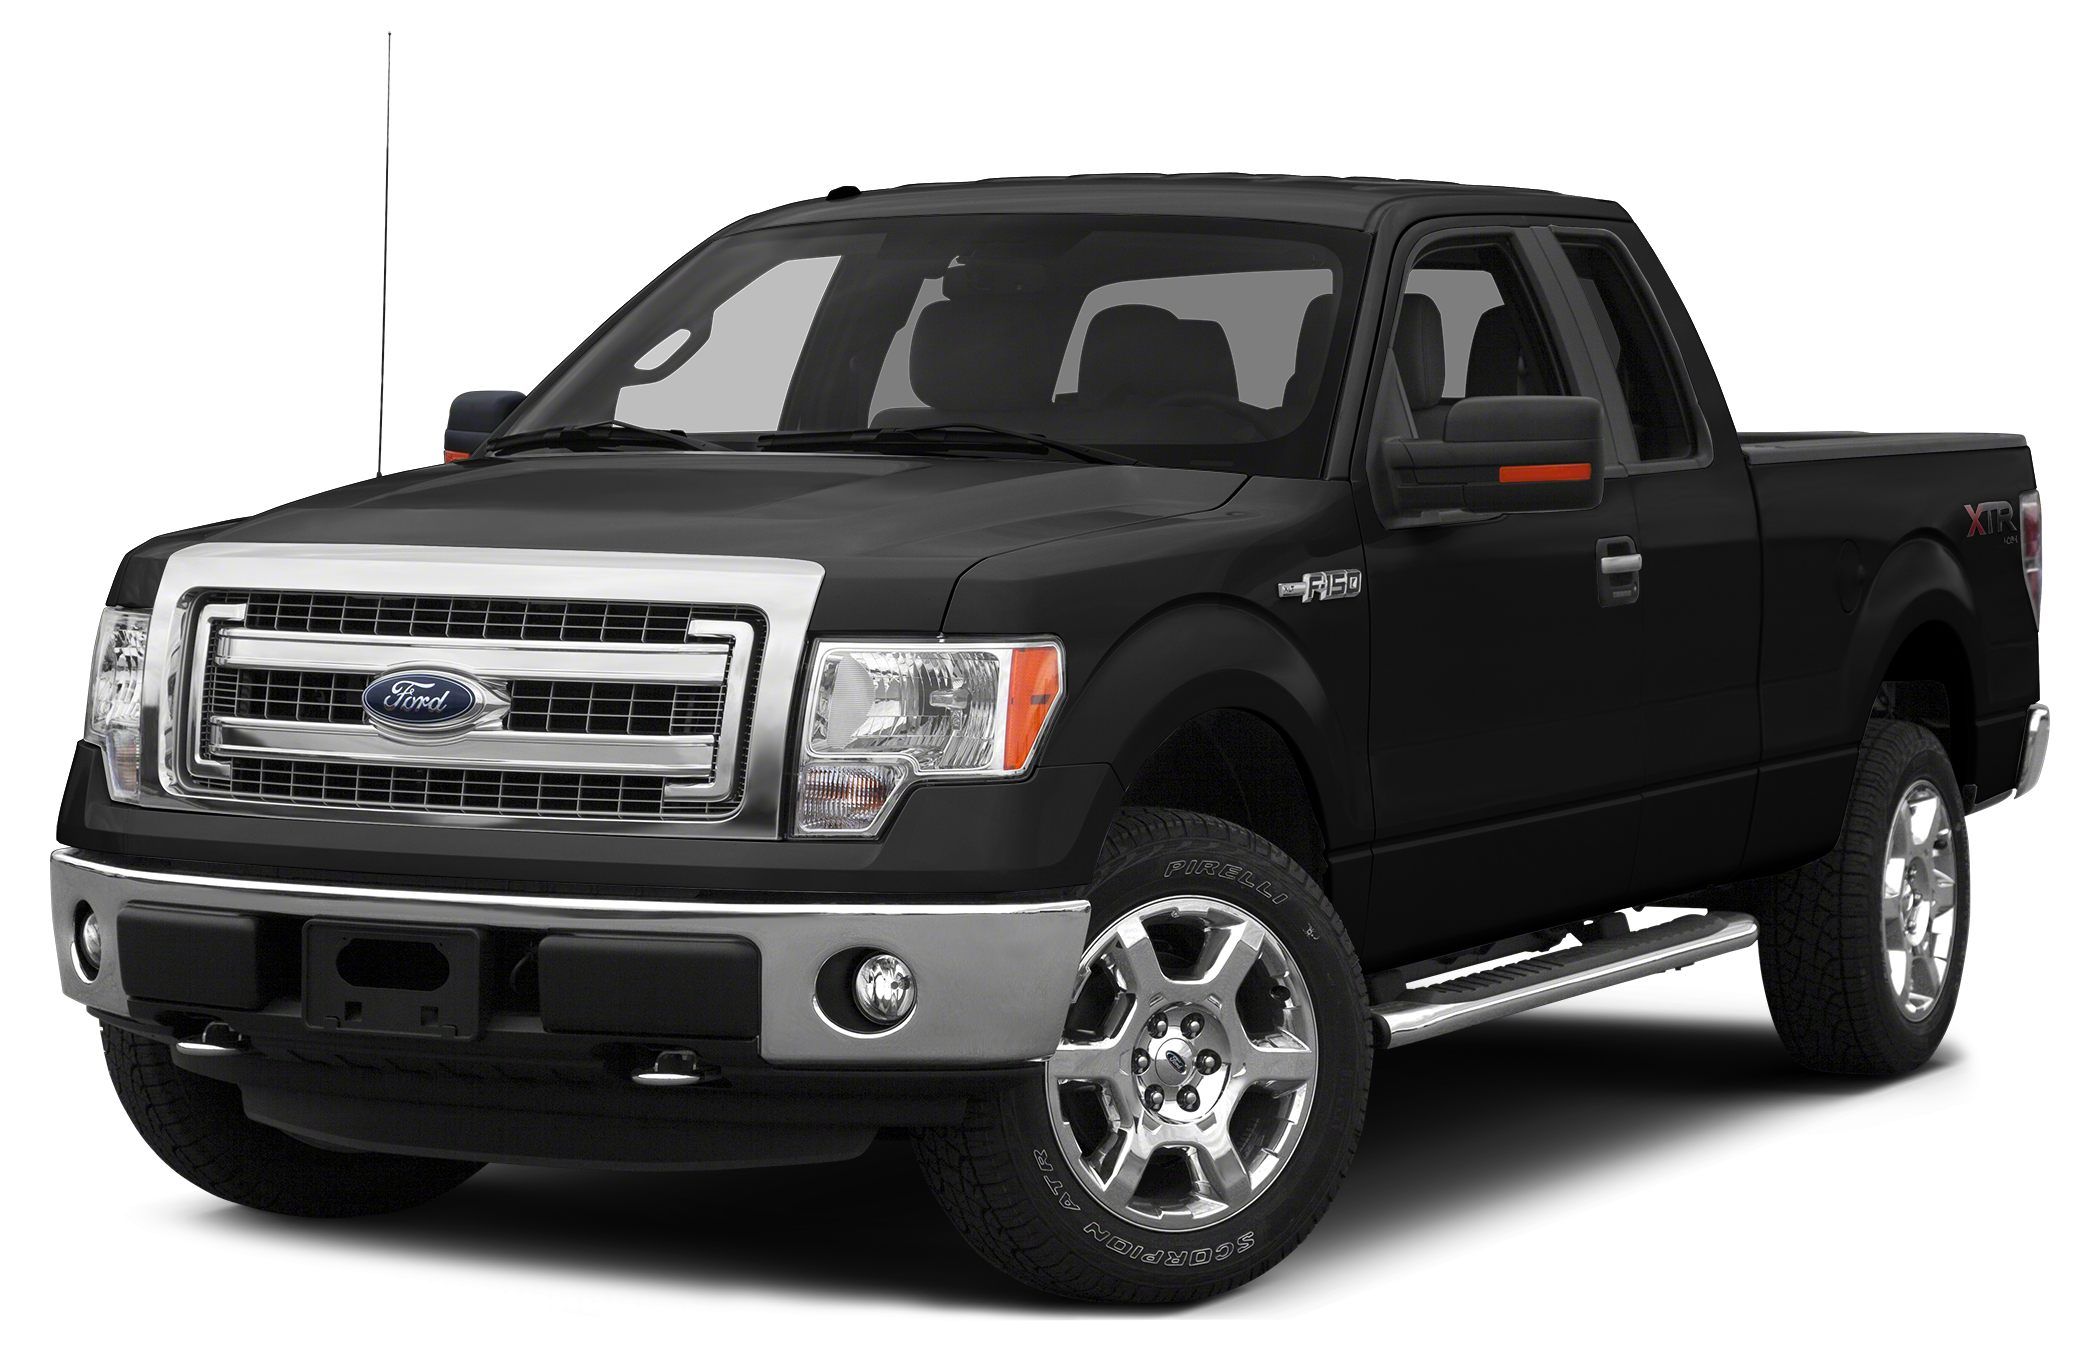 2014 Ford F-150 Lariat LARIATAC AND HEATED LEATHER35L ECOBOOST NAVIGATION20 INCH MACH WHEELS